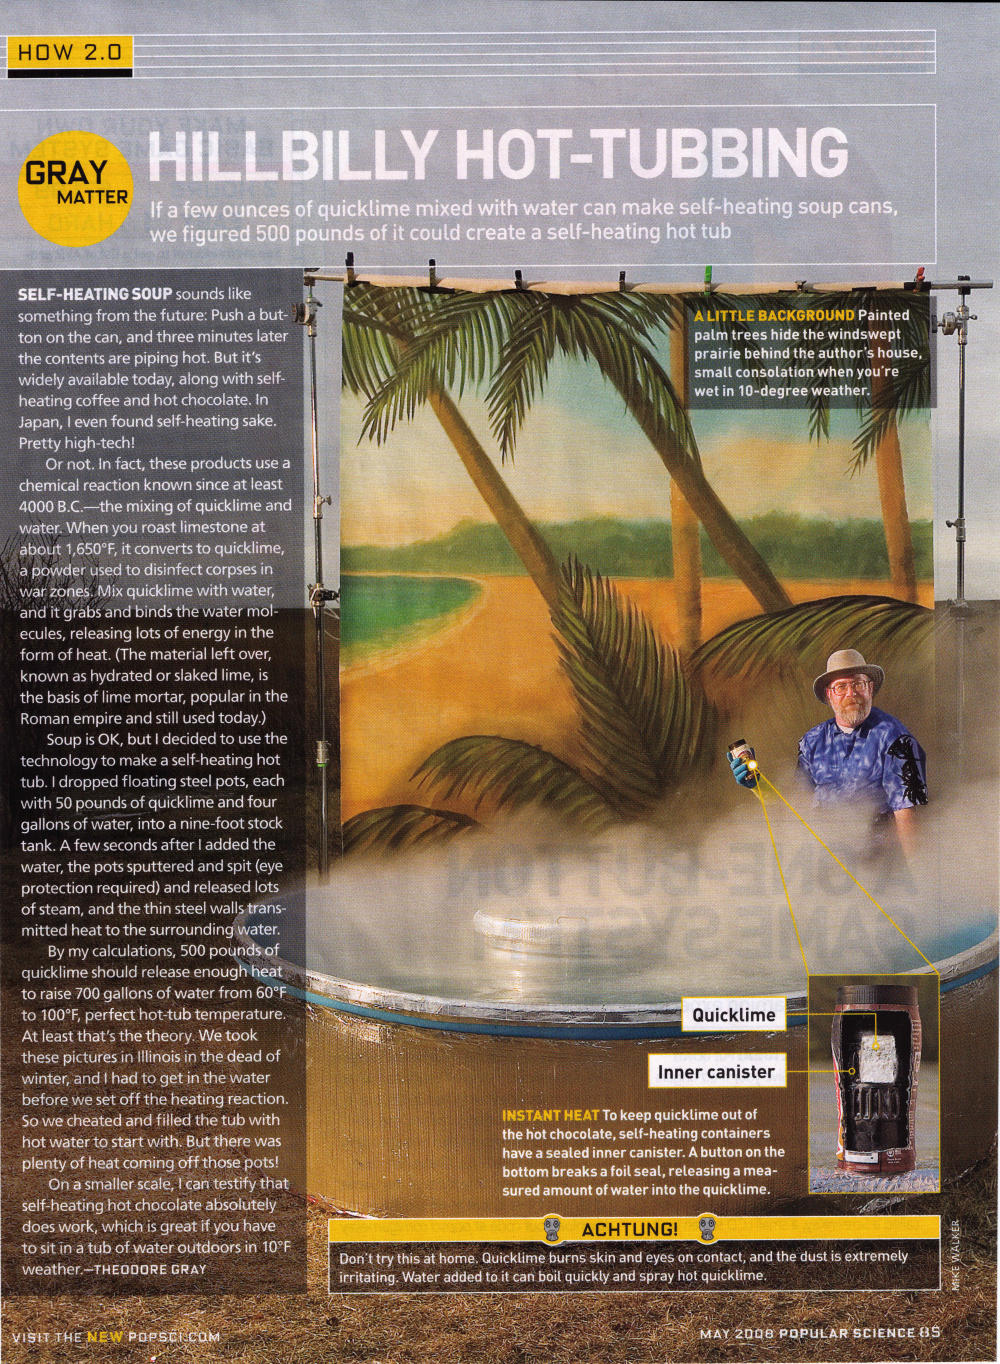 Instant Hot Tub : The instant hot tub popular science column by theodore gray